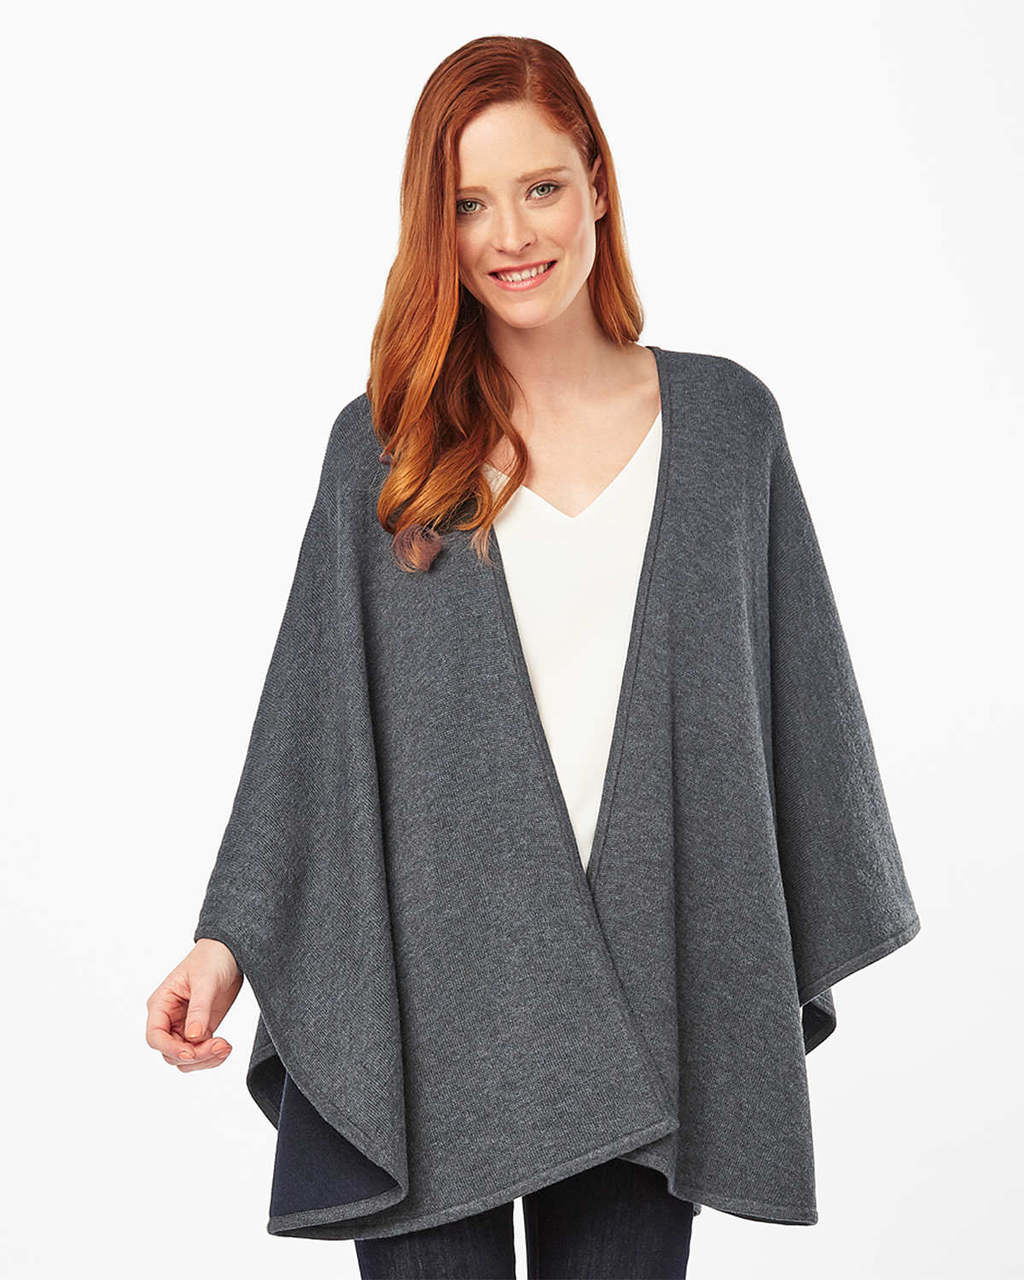 Fearne Cape - pattern: plain; neckline: waterfall neck; length: below the bottom; predominant colour: charcoal; occasions: casual, creative work; style: cape style; fibres: cotton - mix; fit: loose; sleeve length: long sleeve; texture group: knits/crochet; pattern type: knitted - fine stitch; sleeve style: cape/poncho sleeve; season: s/s 2016; wardrobe: highlight